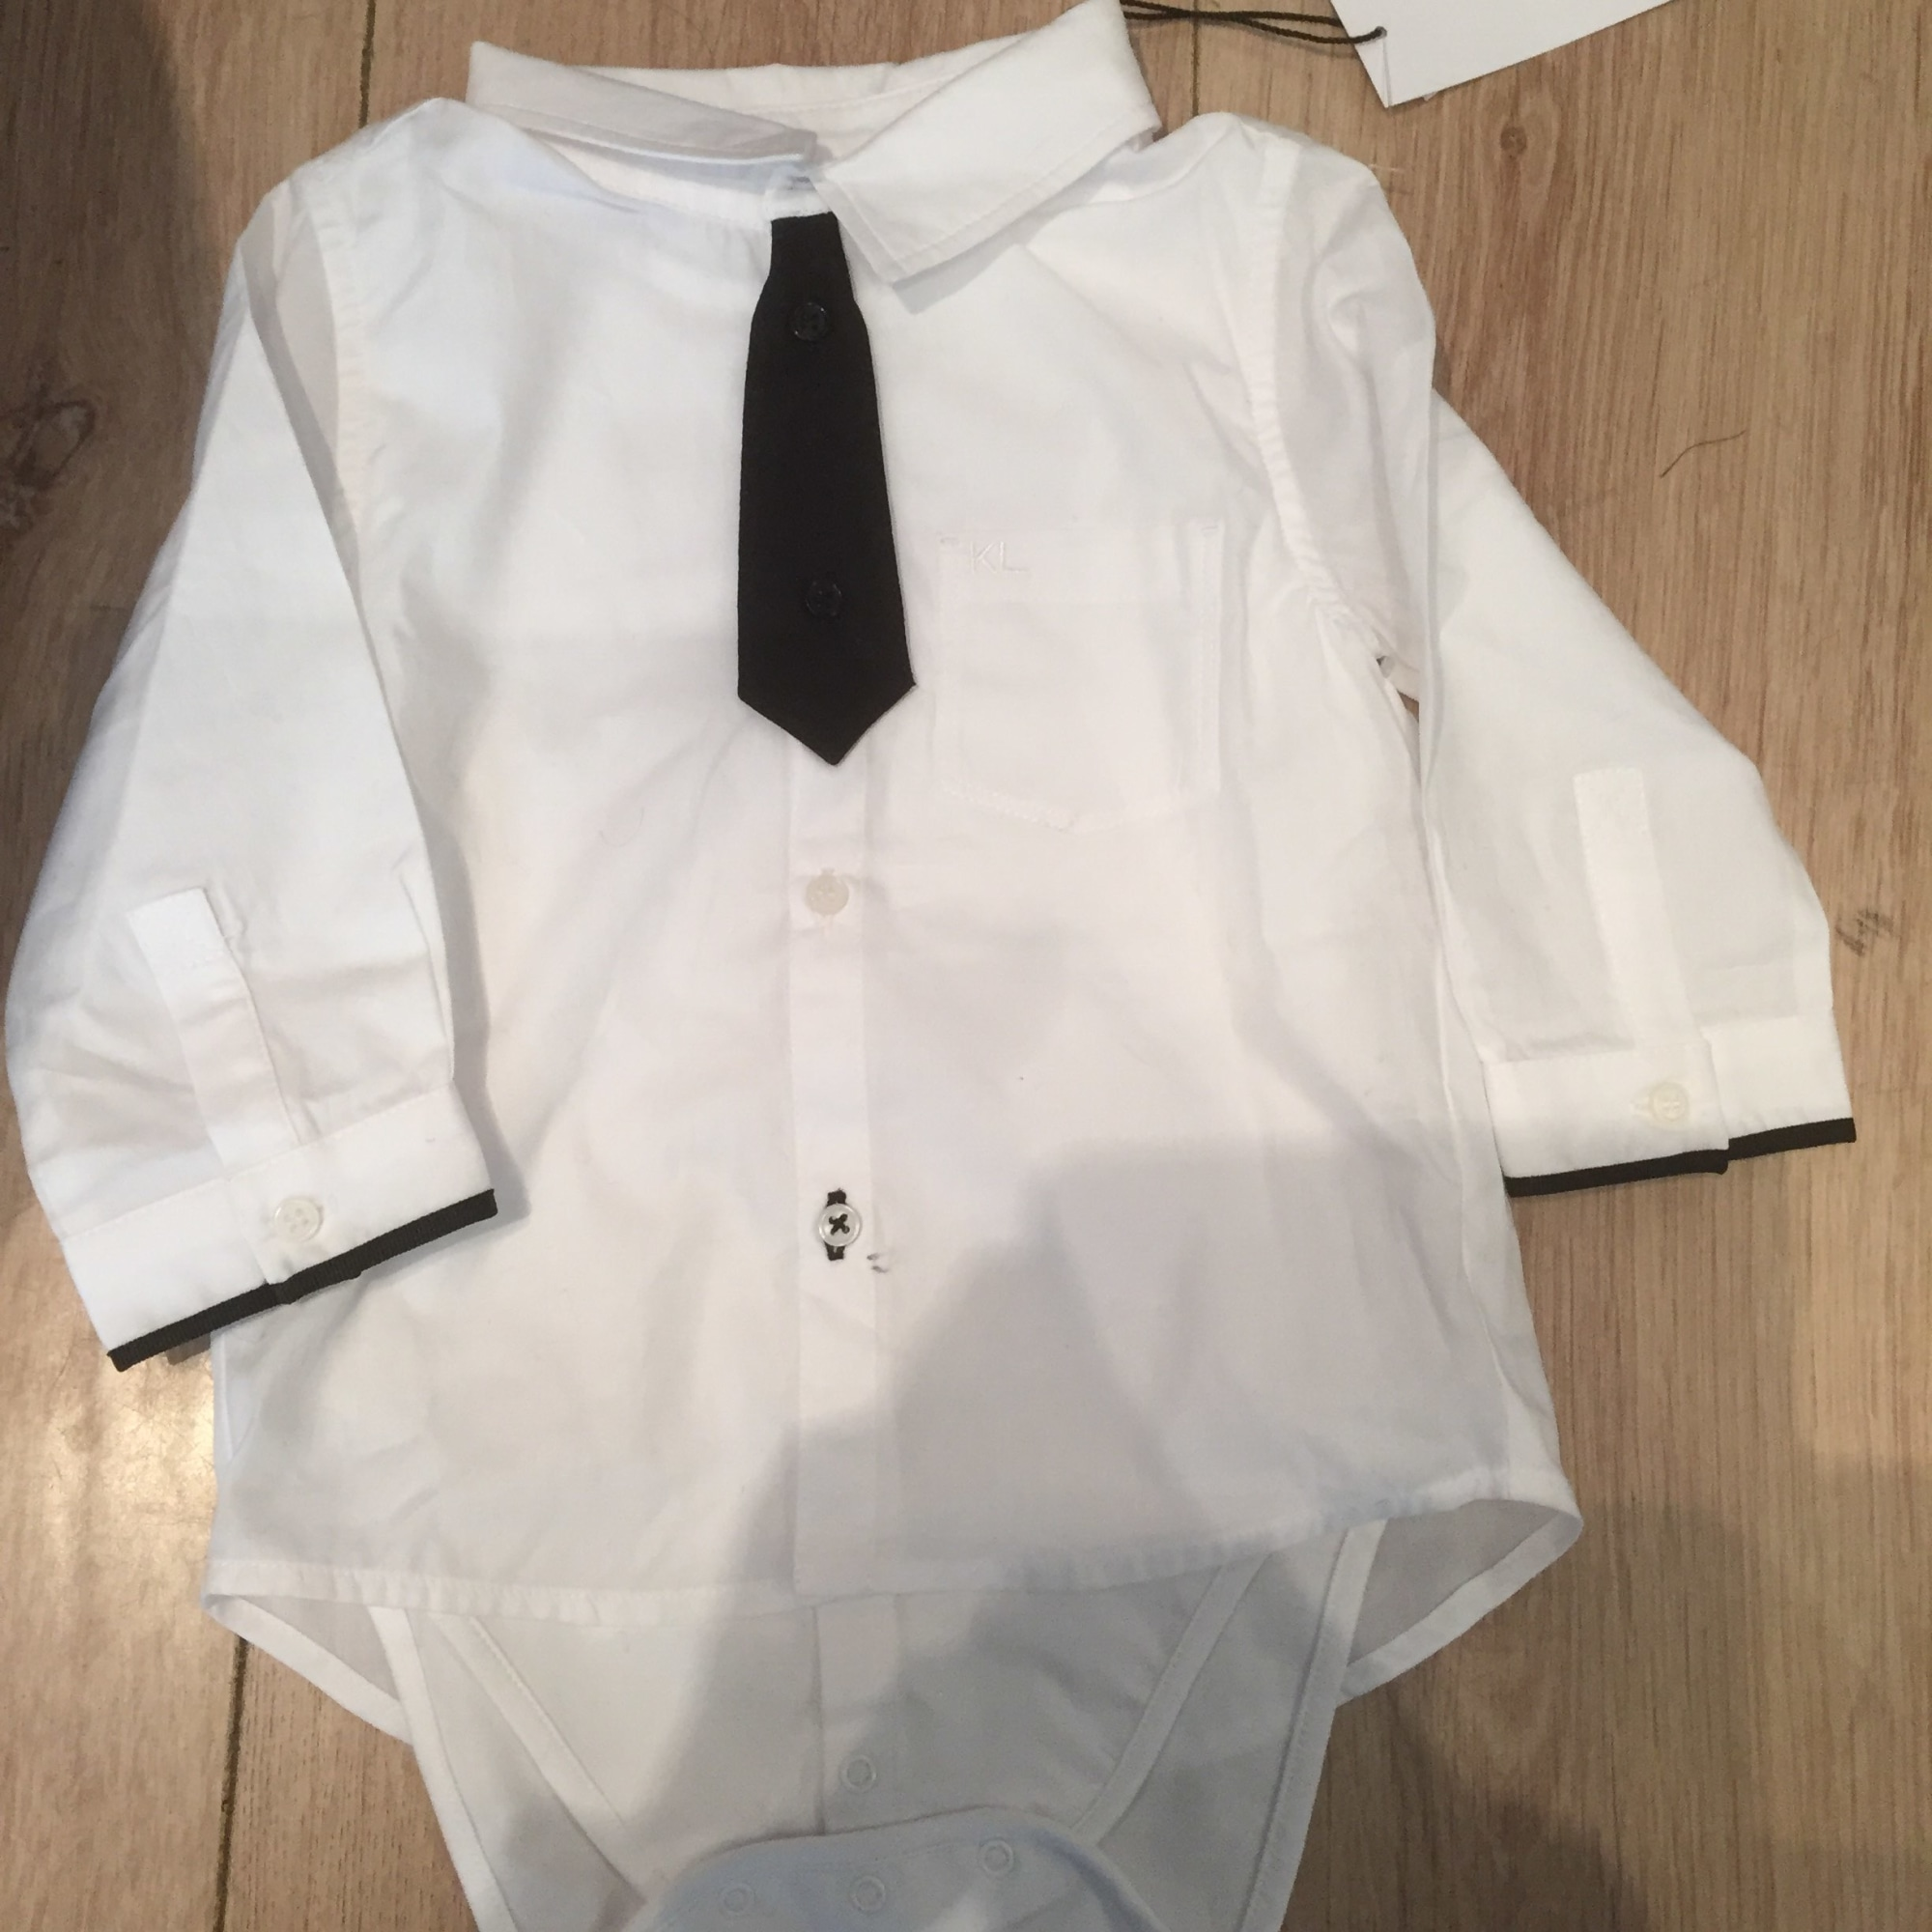 Chemise KARL LAGERFELD coton blanc 12 mois